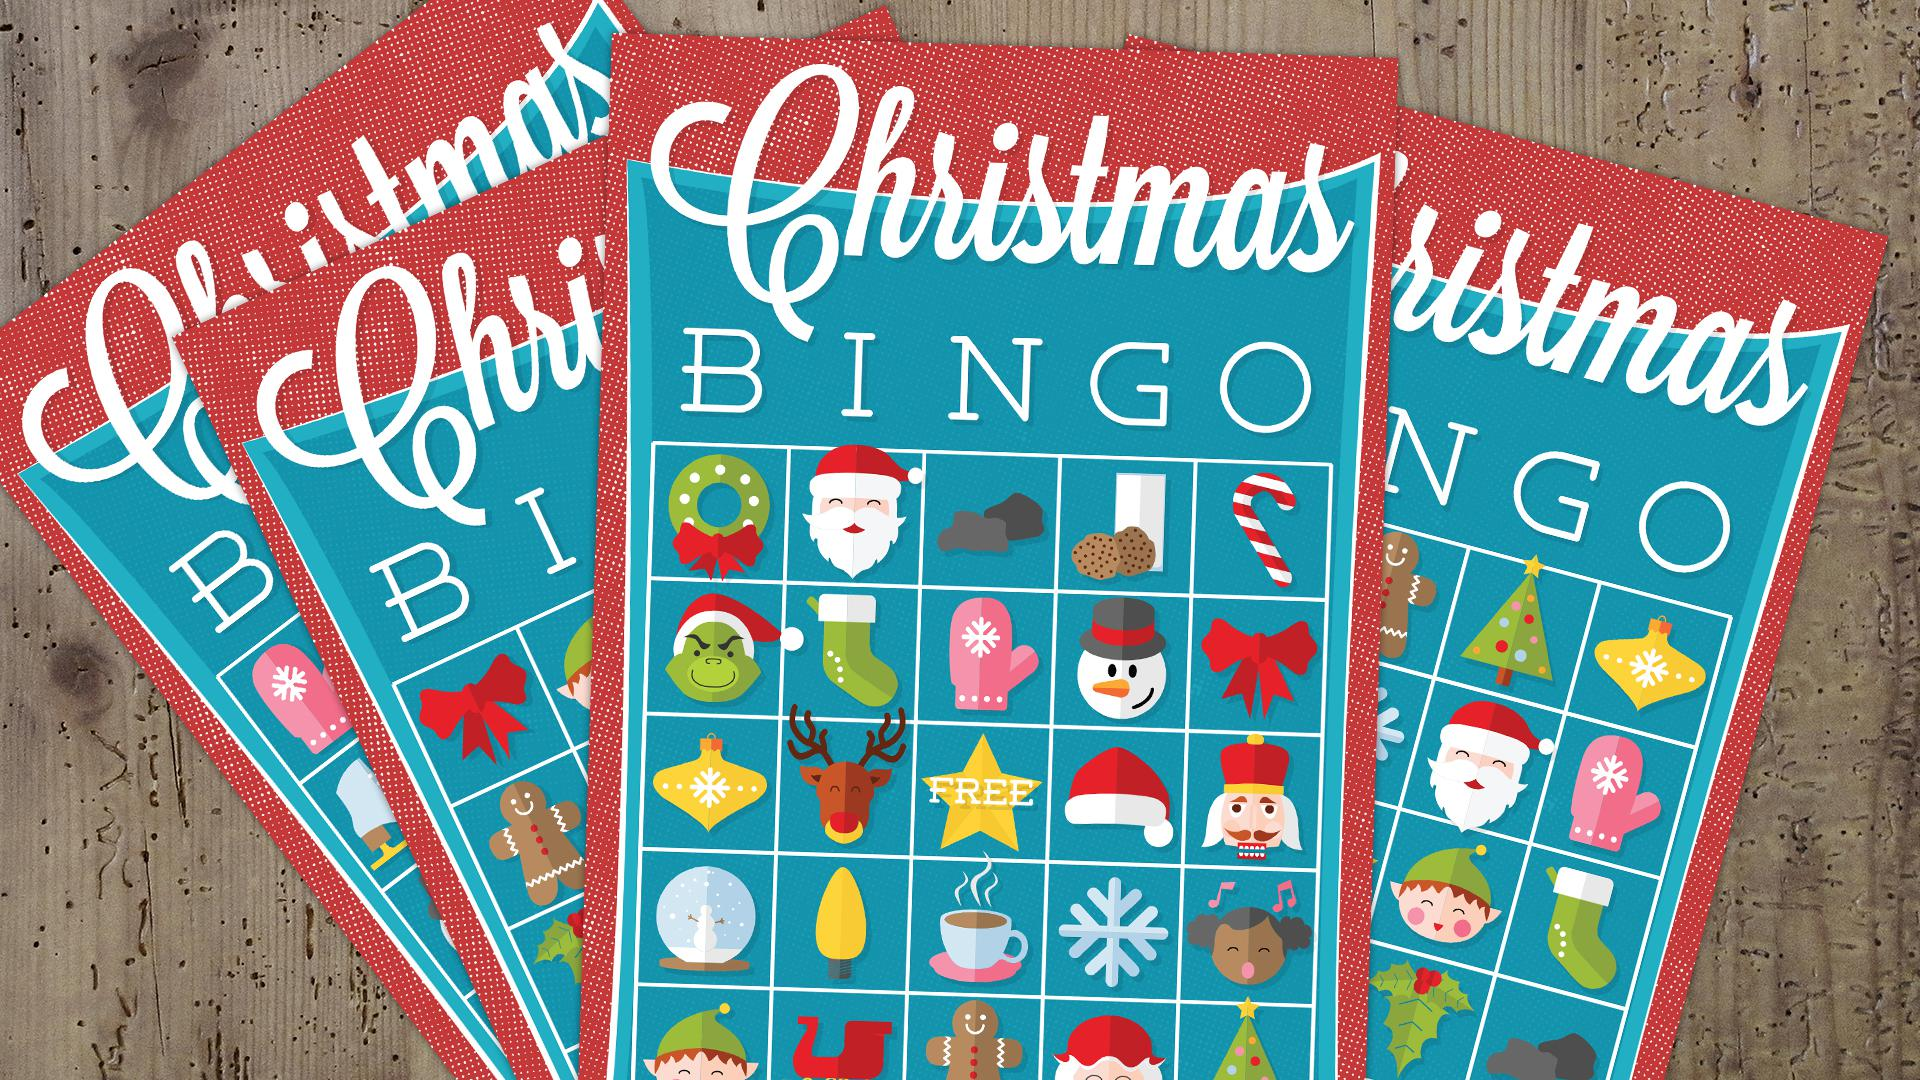 graphic about Holiday Bingo Printable referred to as Xmas bingo sport printable with a few twists upon the